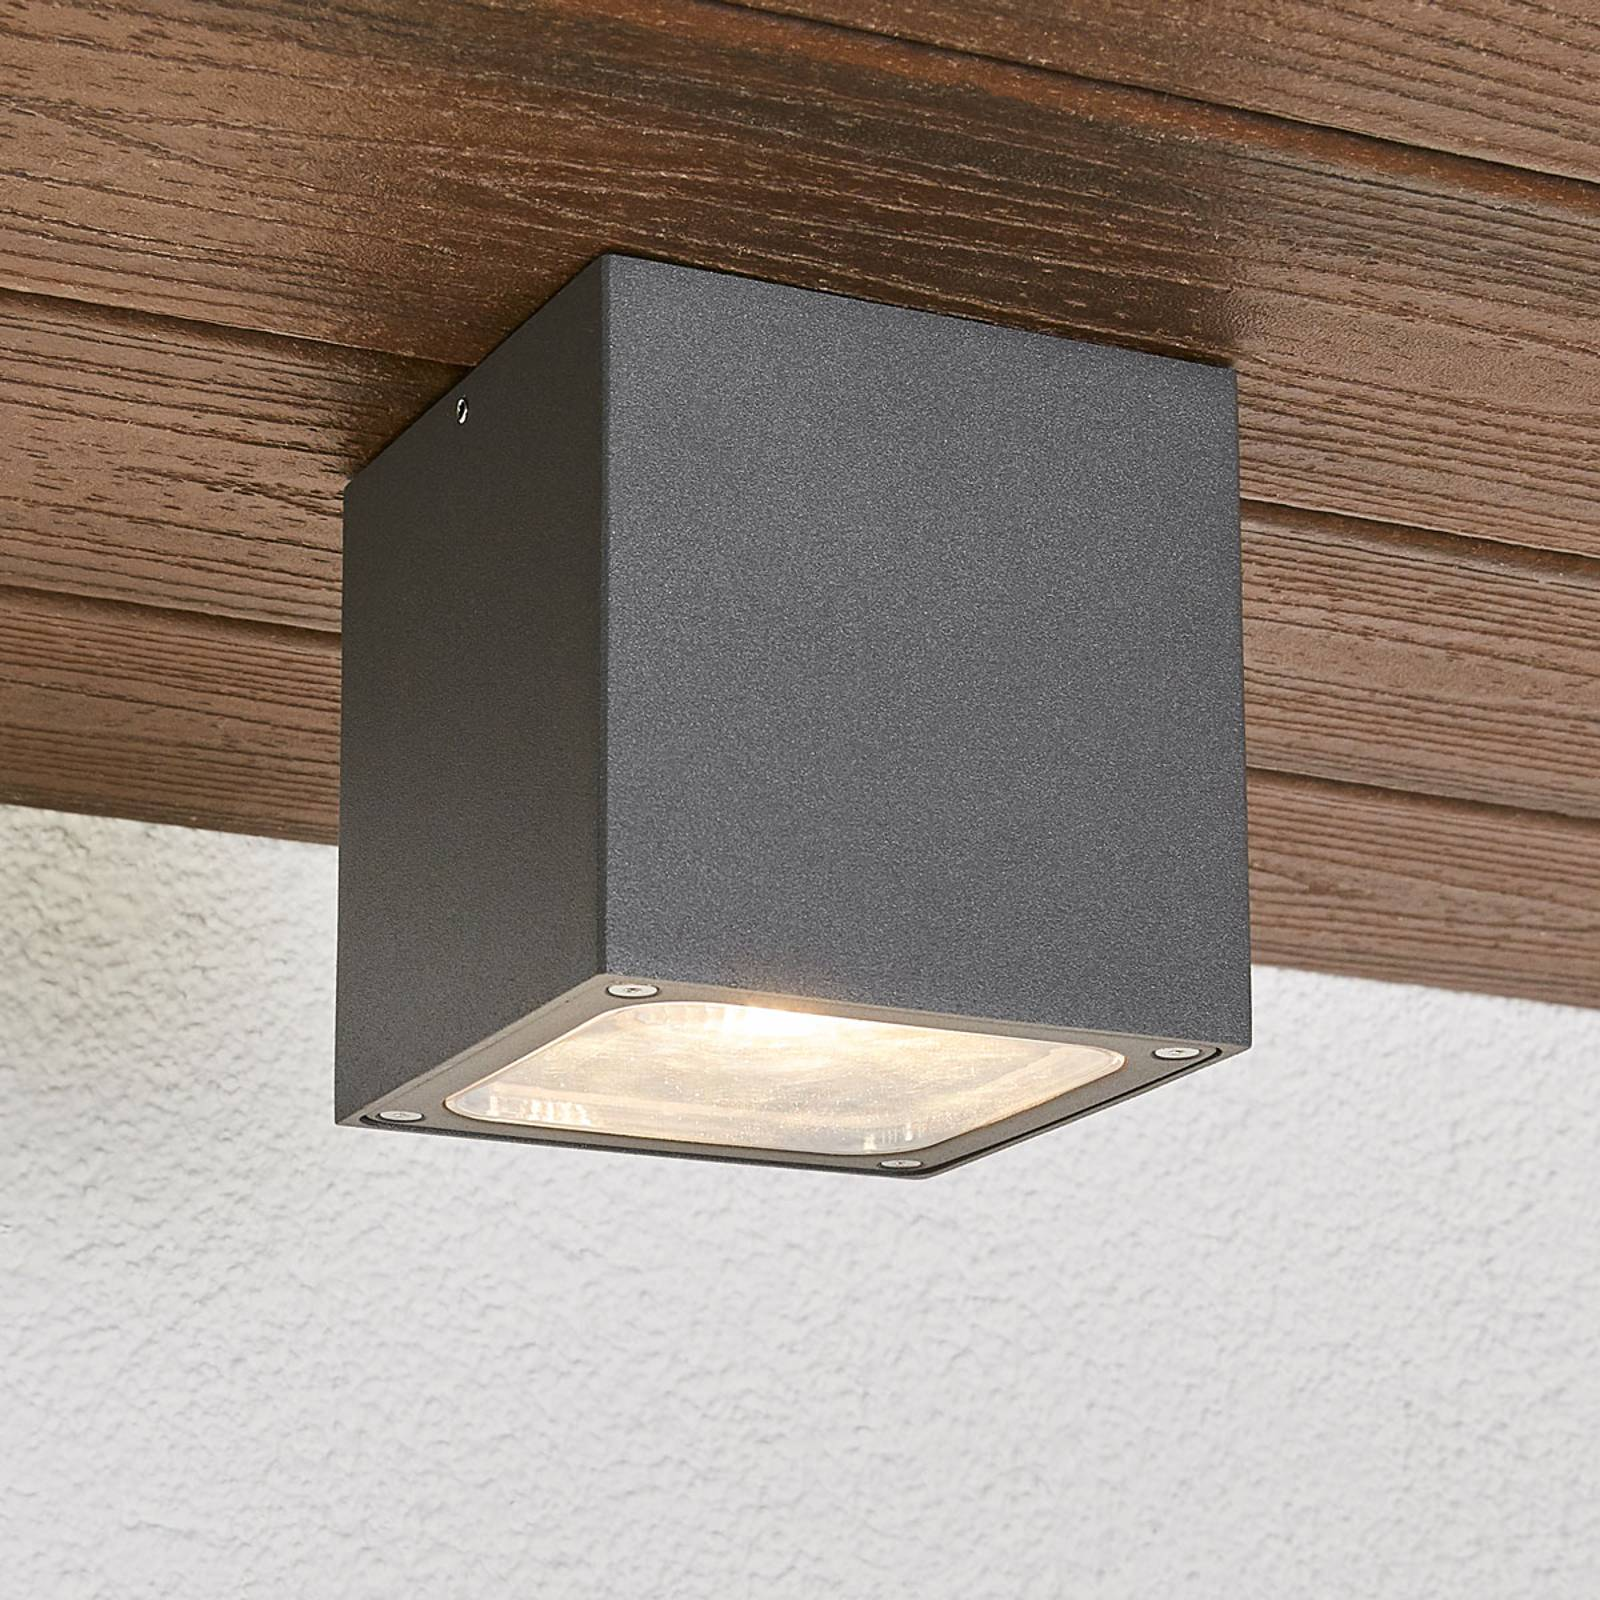 Tanea - cube-shaped LED ceiling light, IP54 from Lampenwelt.com